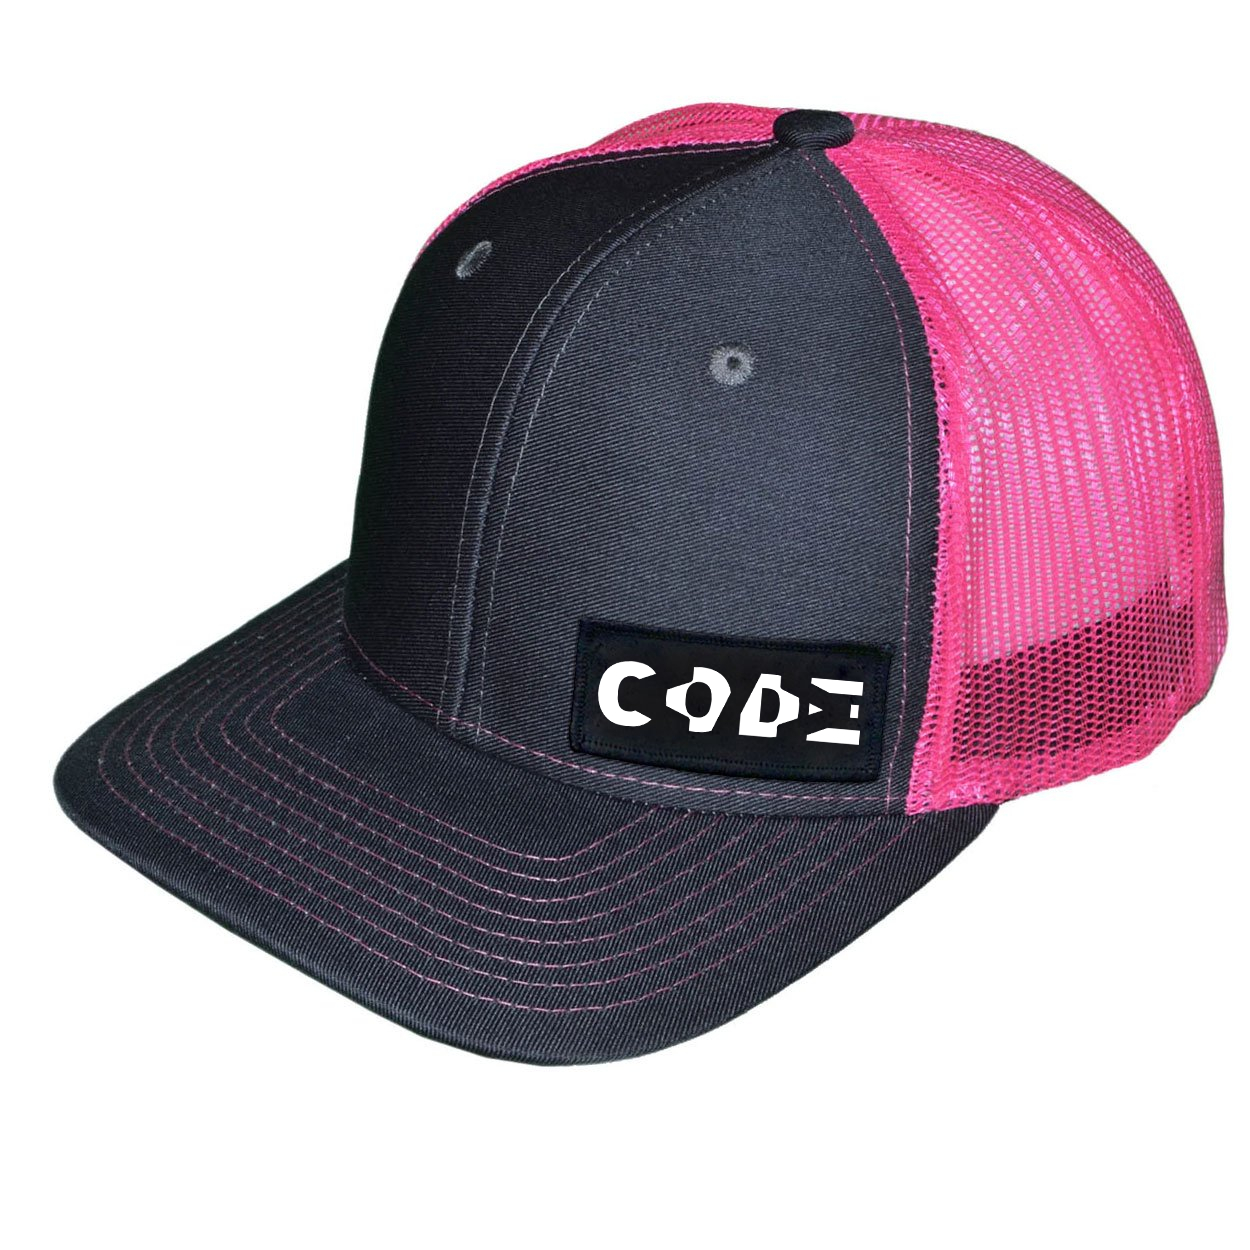 Code Tag Logo Night Out Woven Patch Snapback Trucker Hat Dark Gray/Neon Pink (White Logo)